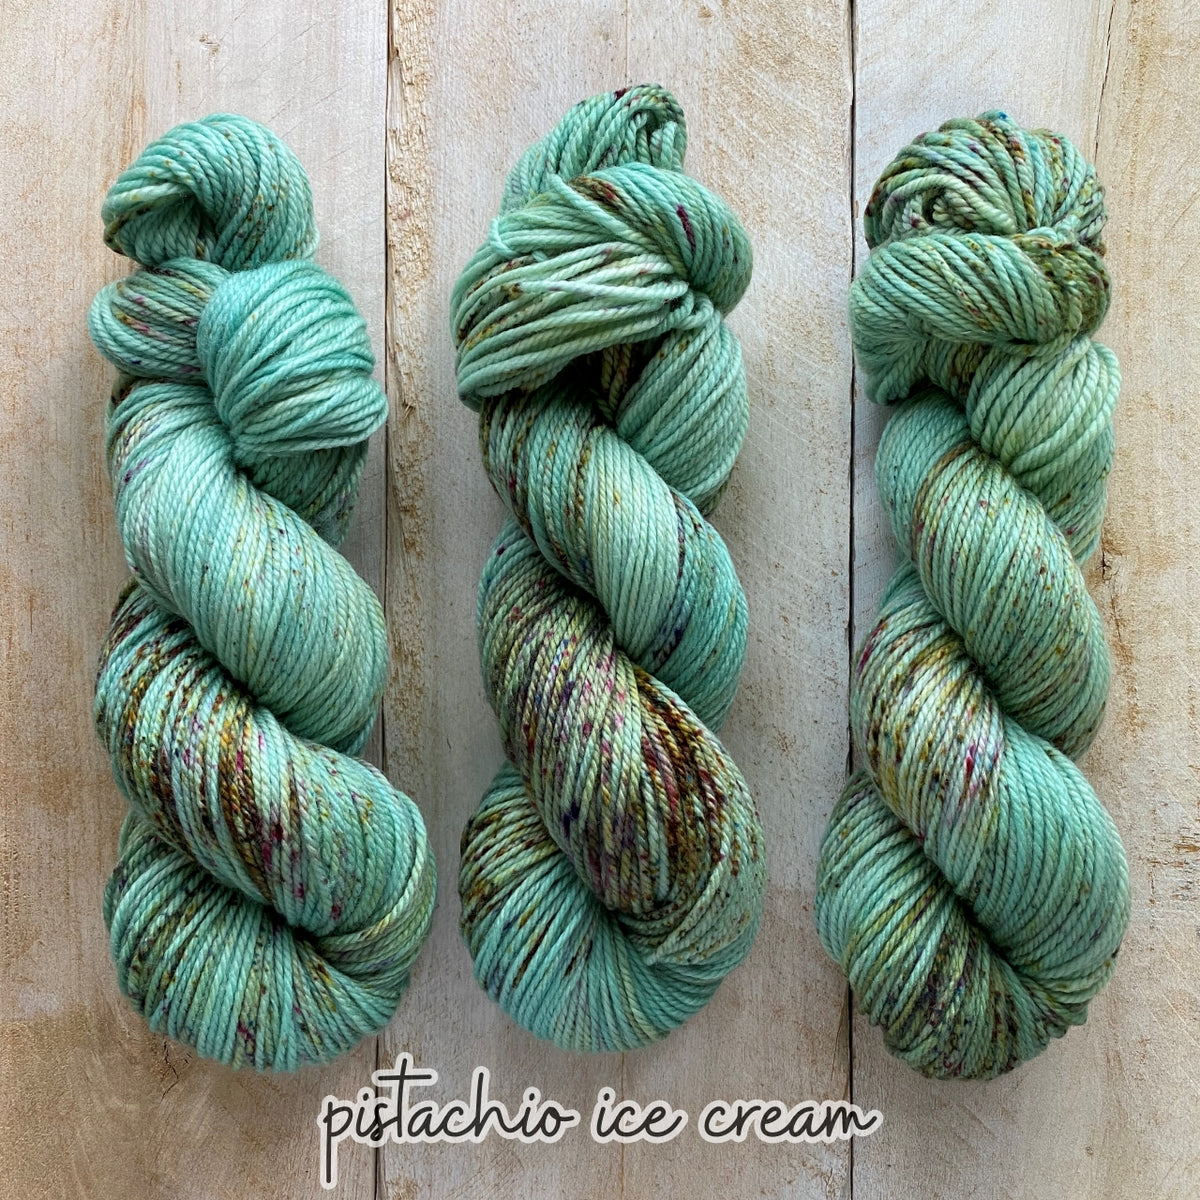 PISTACHIO ICE CREAM by Louise Robert Design | MERINO WORSTED hand-dyed Speckled yarn